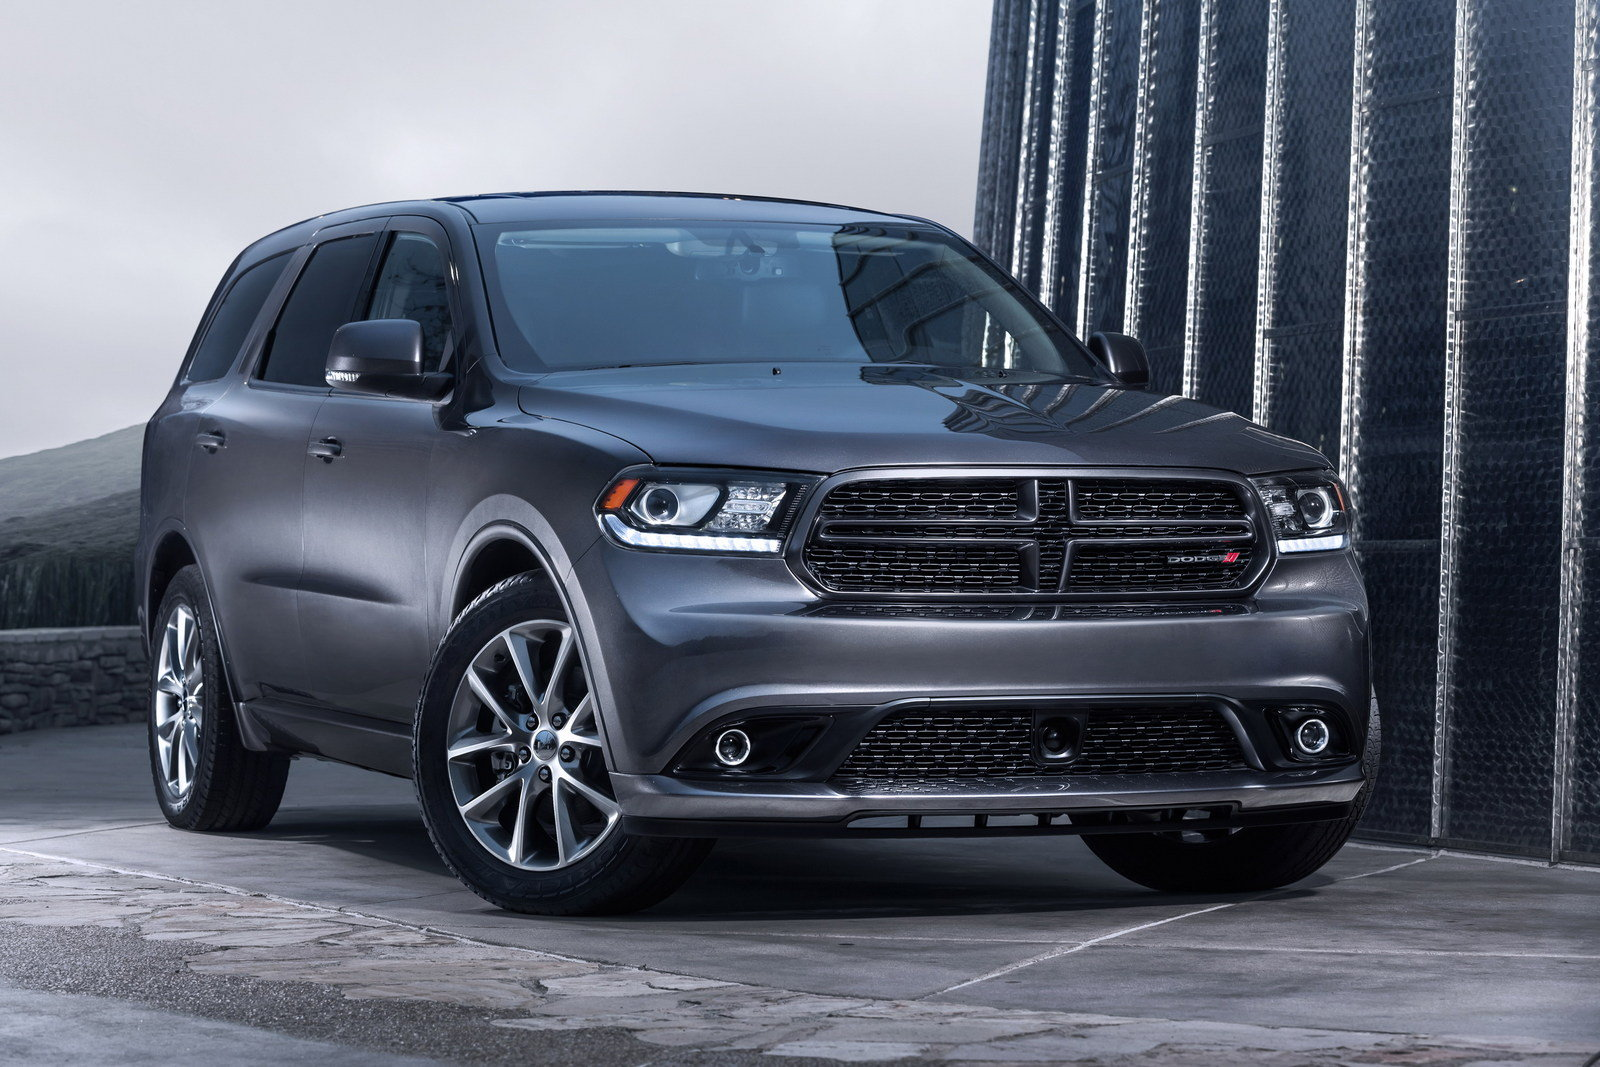 New Ford Explorer >> 2014 Dodge Durango Review - Top Speed